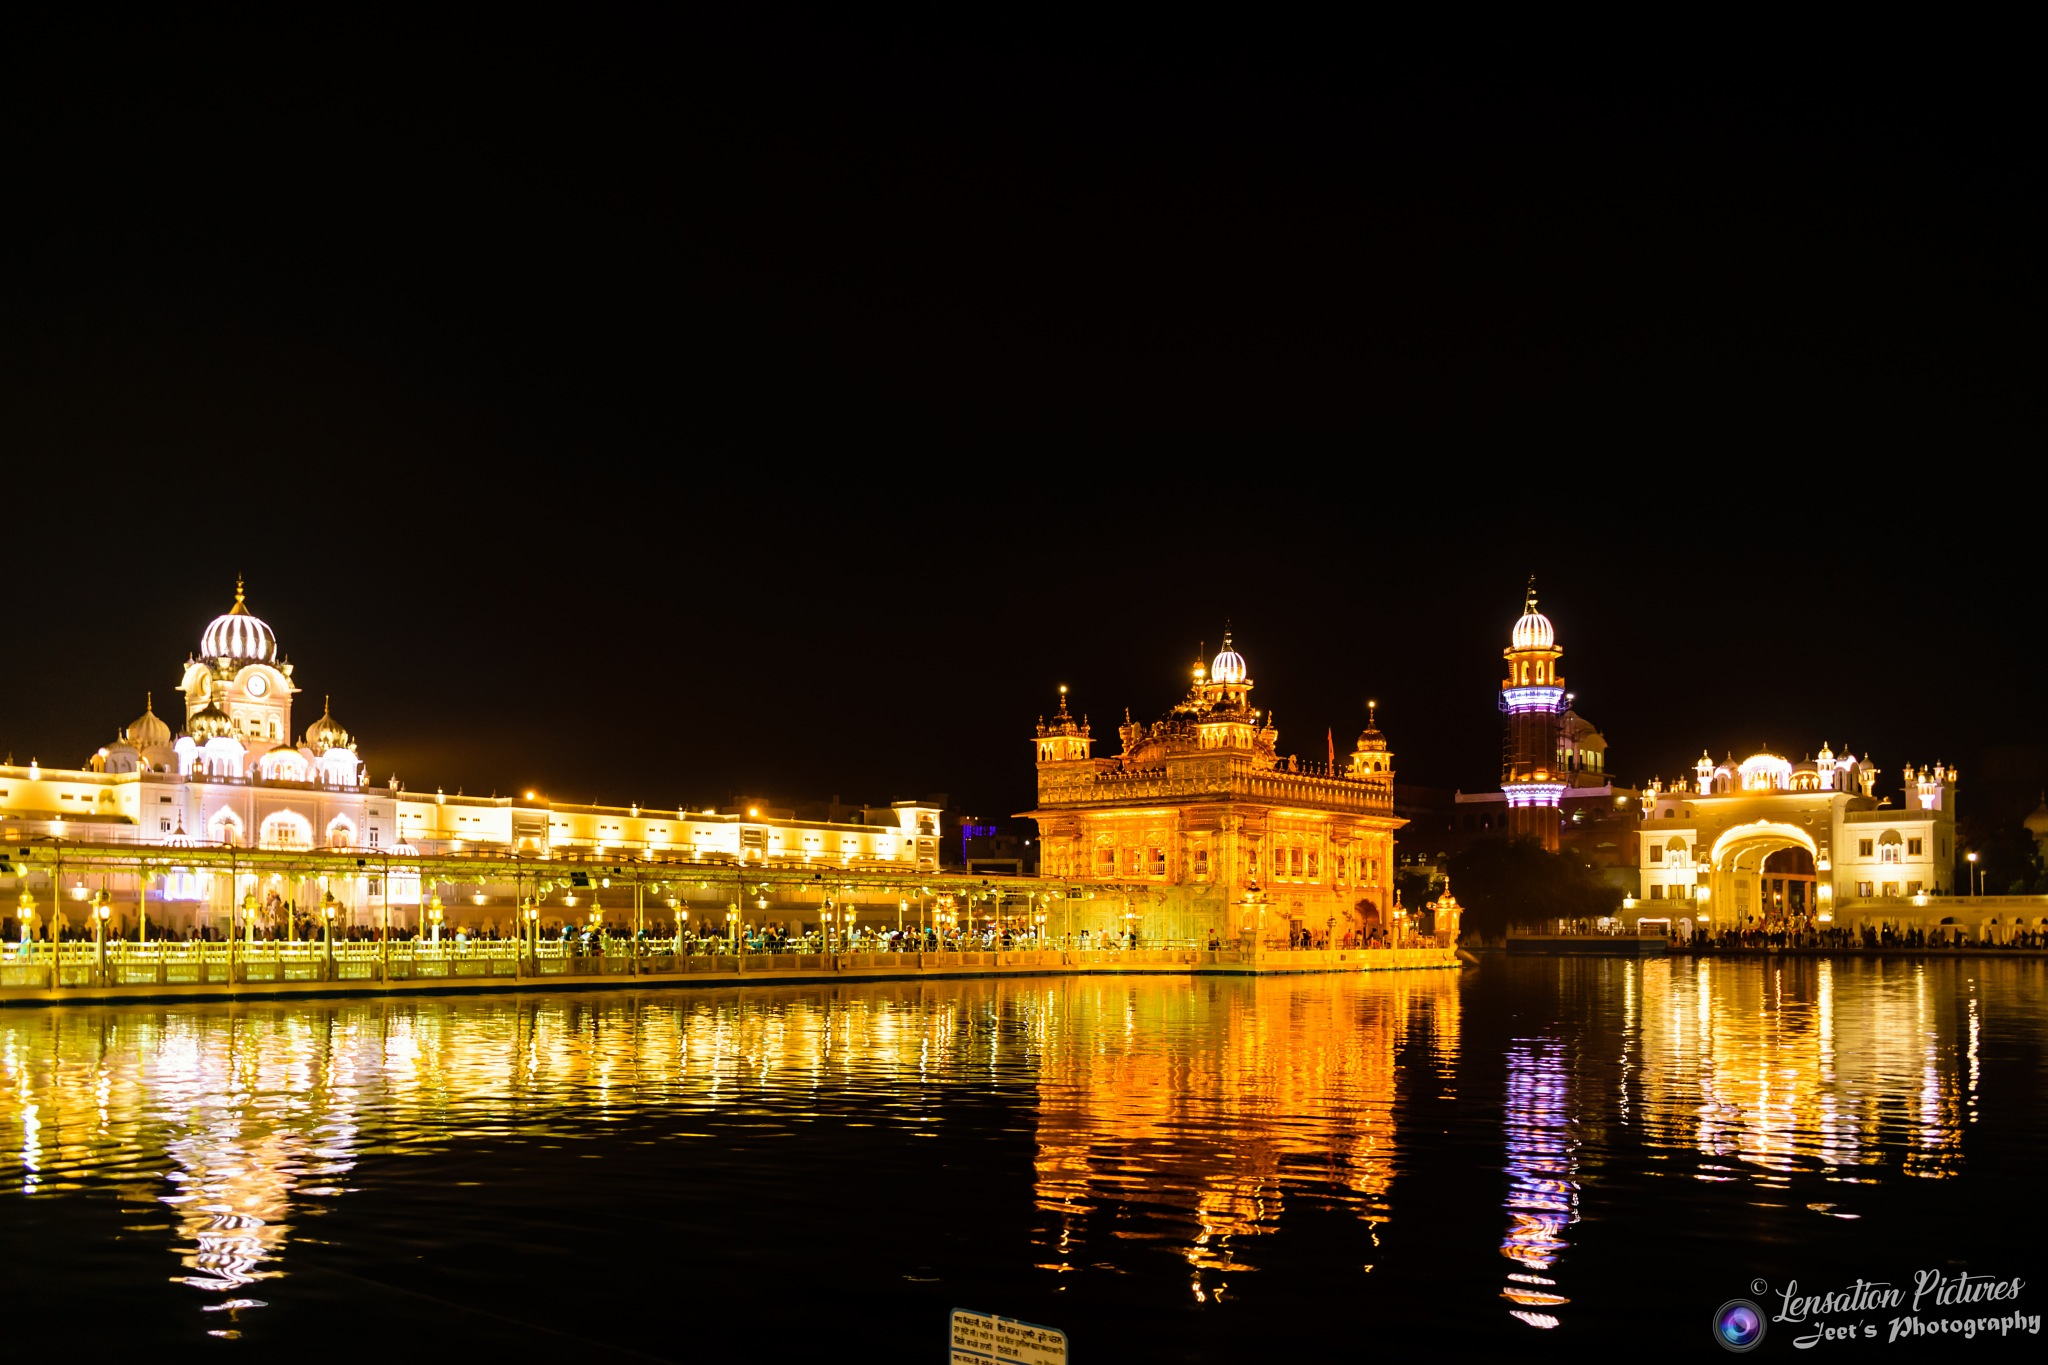 Golden Temple - Amritsar, India by Lensation Pictures- Jeet's Photography